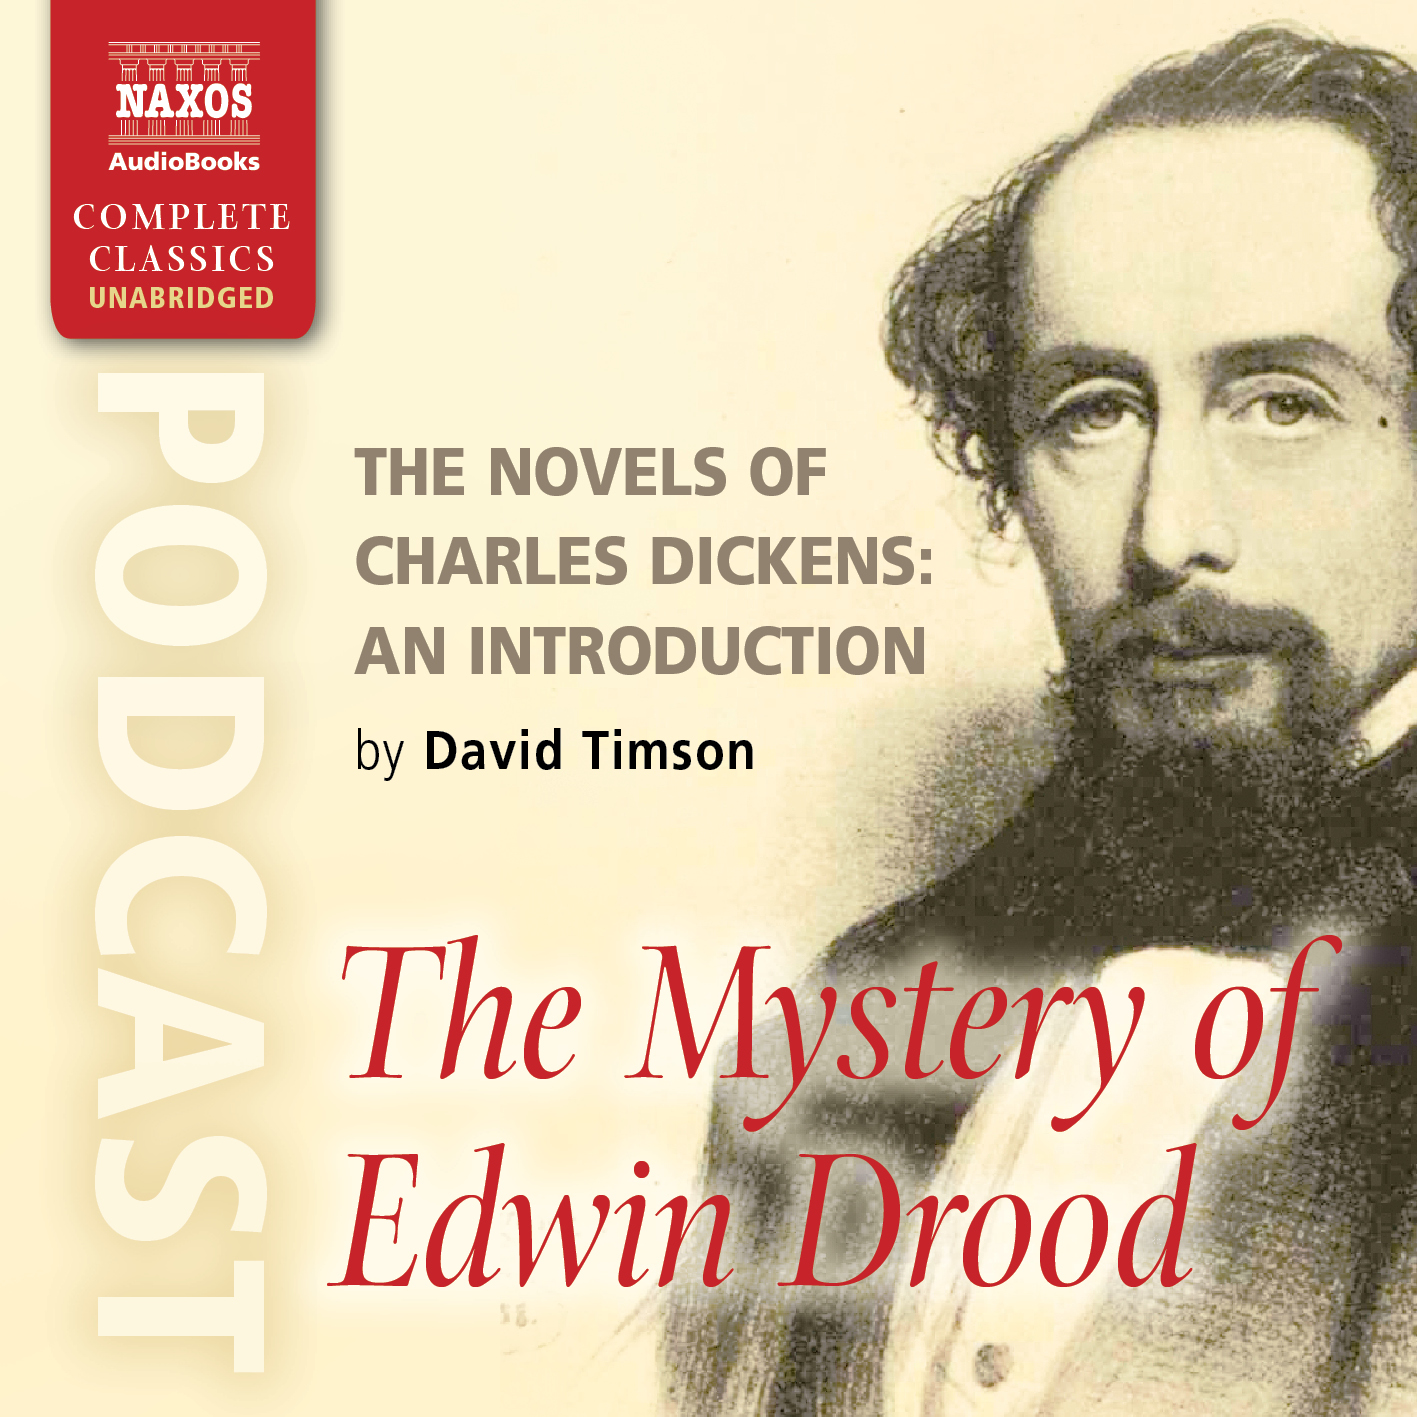 https://naxosaudiobooks.com/wp-content/uploads/2019/08/NA0399_The_Mystery_of_Edwin_Drood_Podcast.jpg